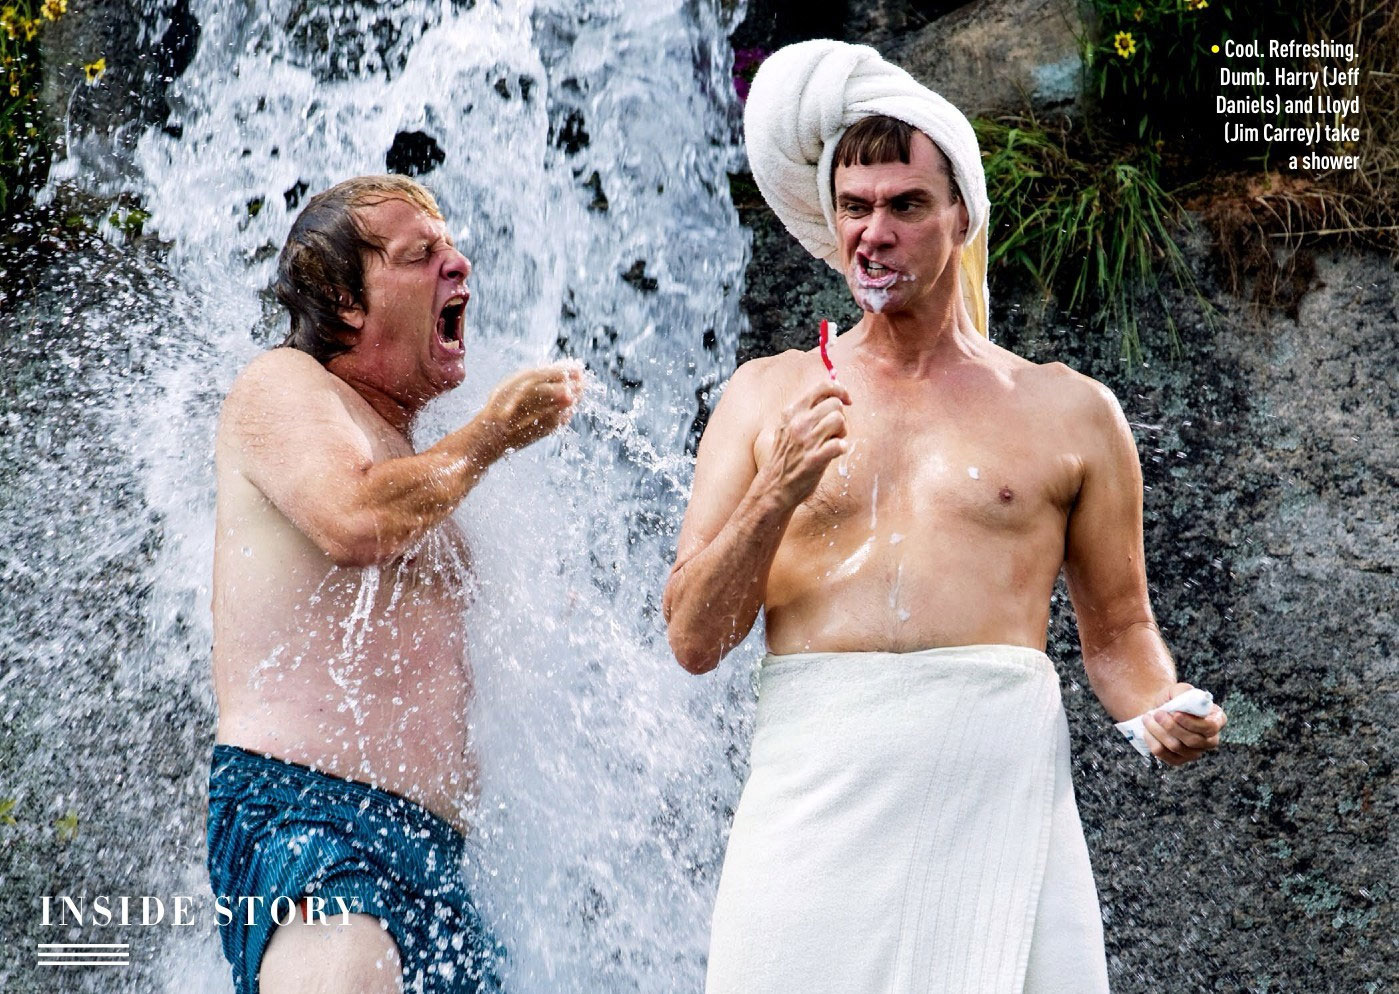 Dumb and Dumber To: Harry and Lloyd Take a Shower in a New